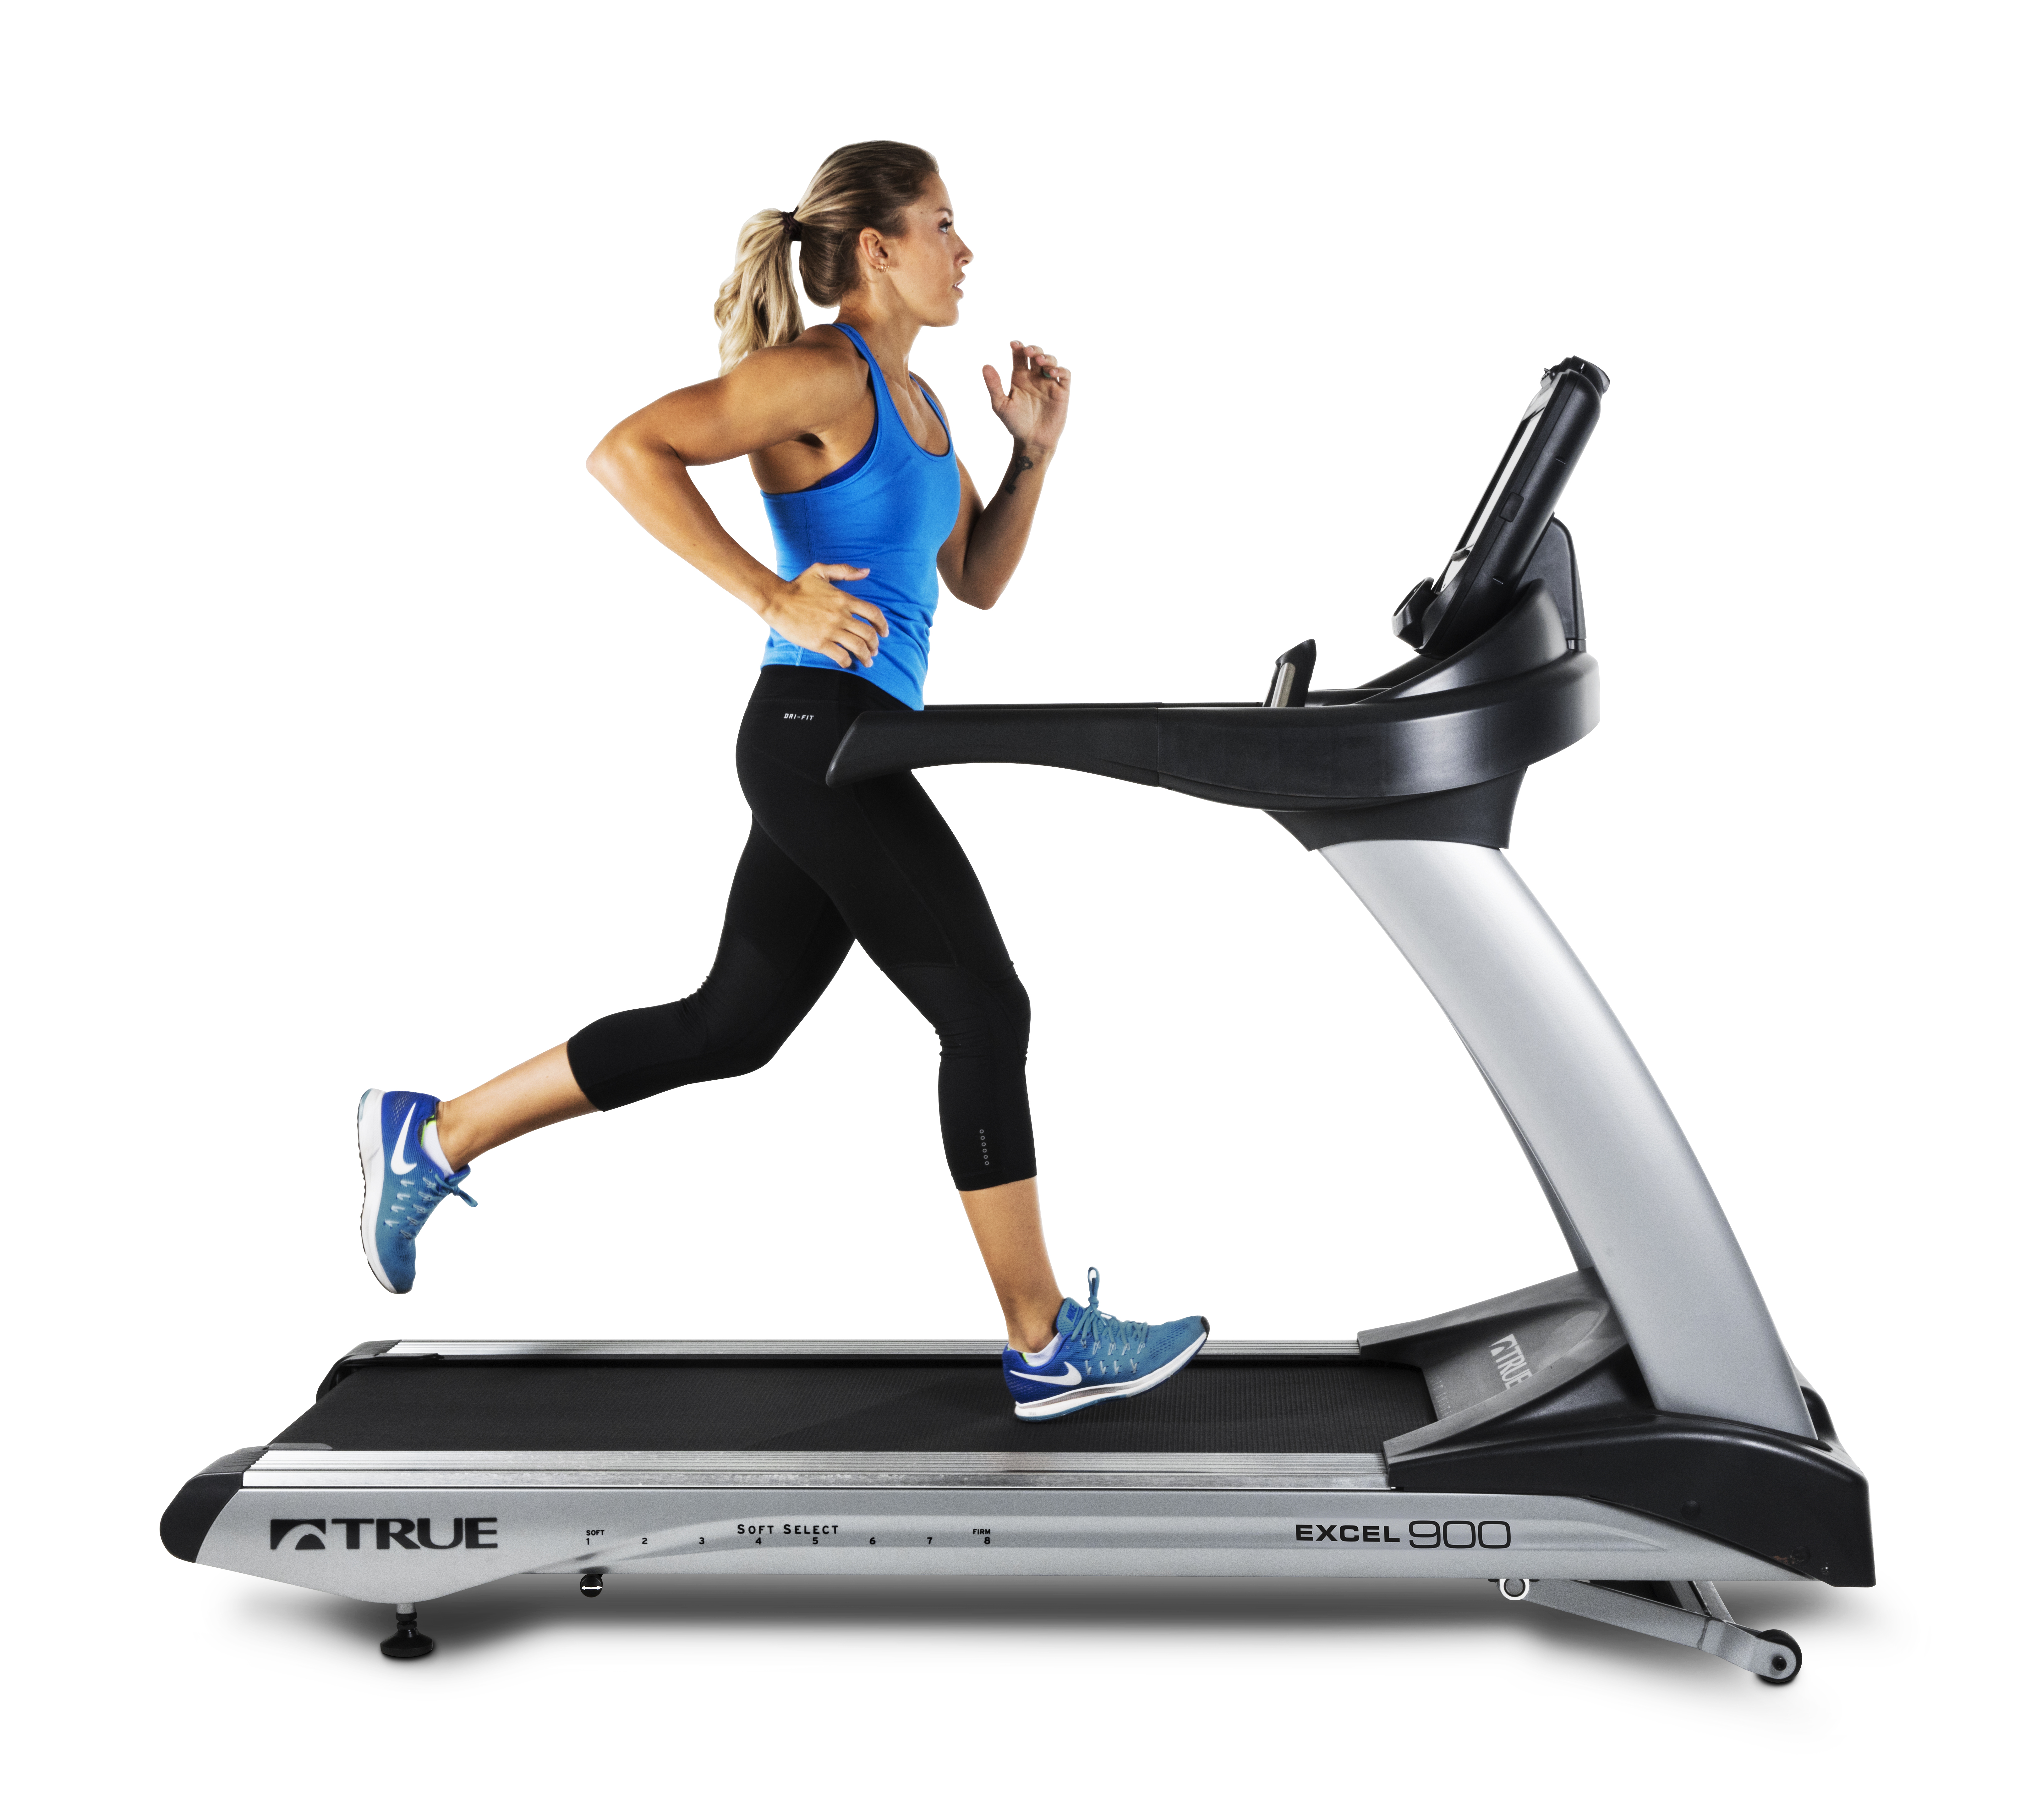 True Performance Series Elliptical: TRUE Fitness Technology Releases Refreshed Residential